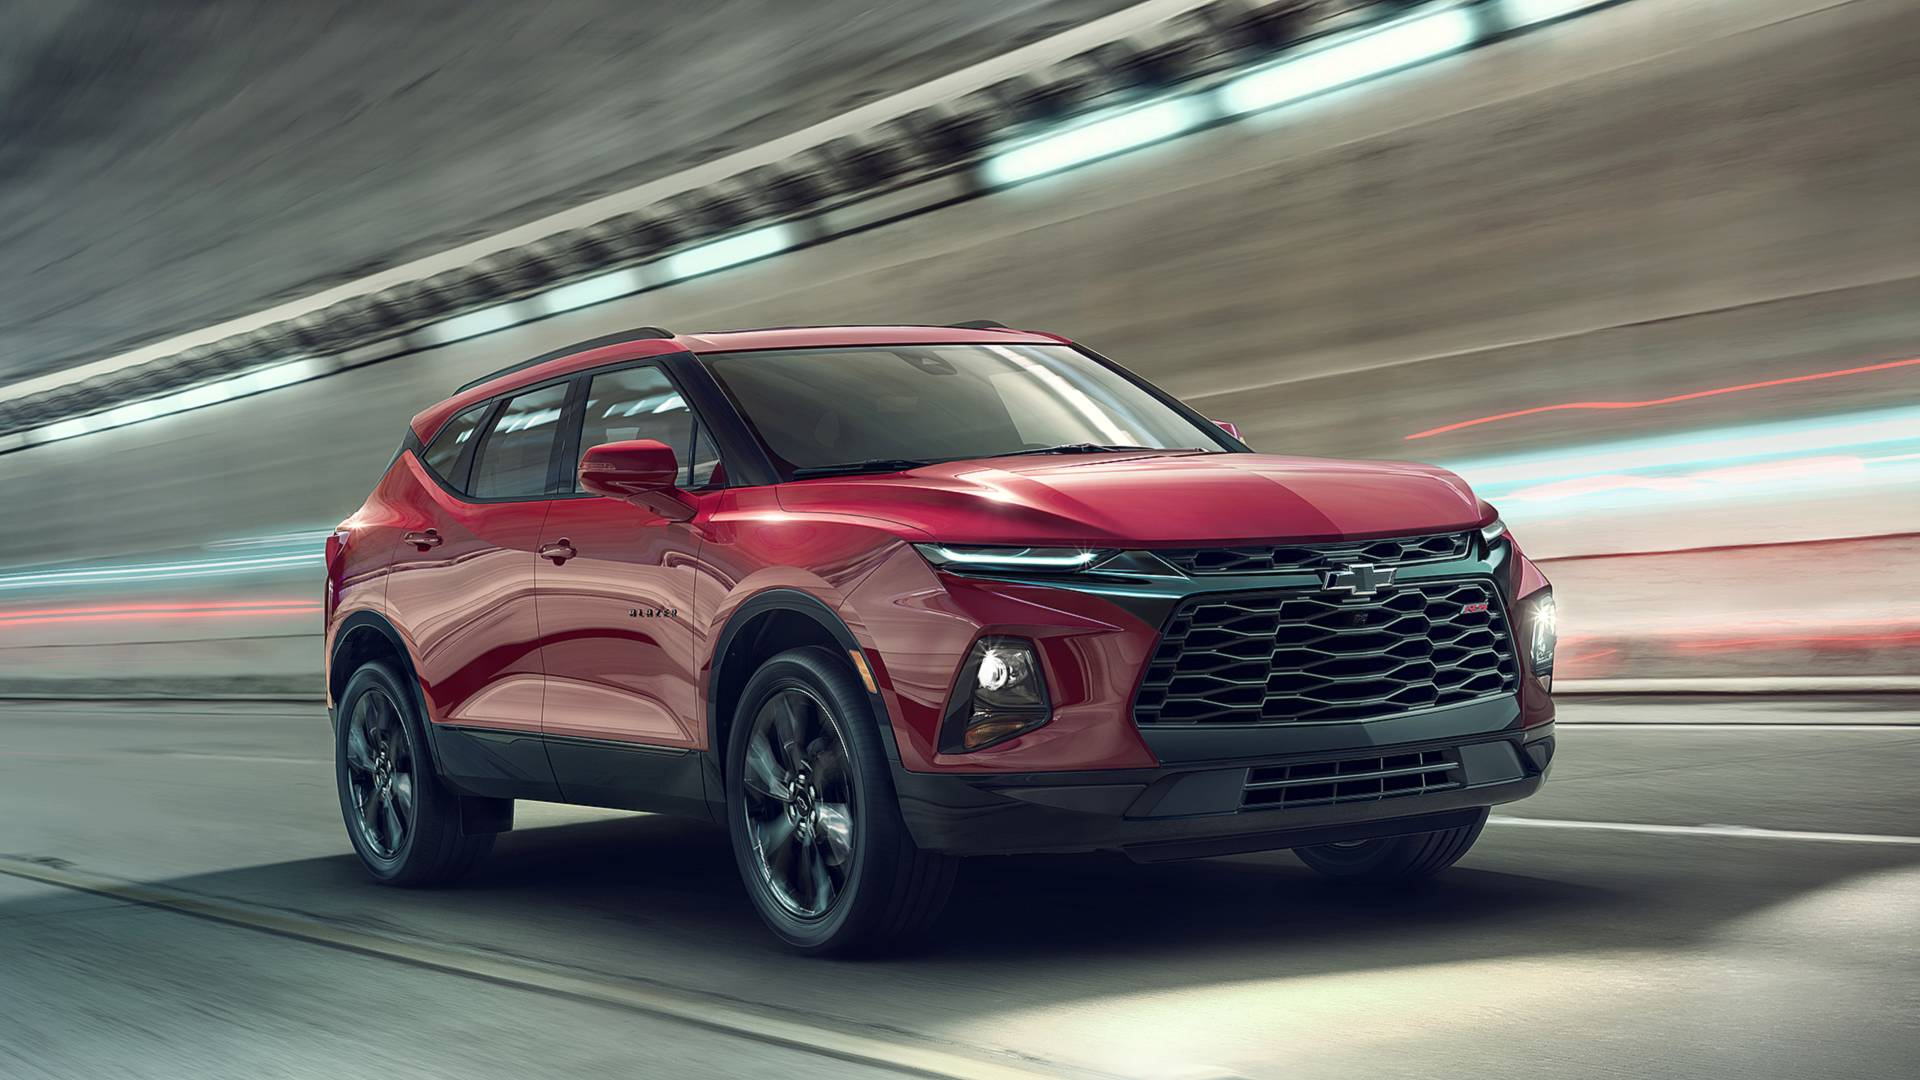 Chevrolet has debuted its new Blazer SUV series based on the Cadillac XT5 in the USA